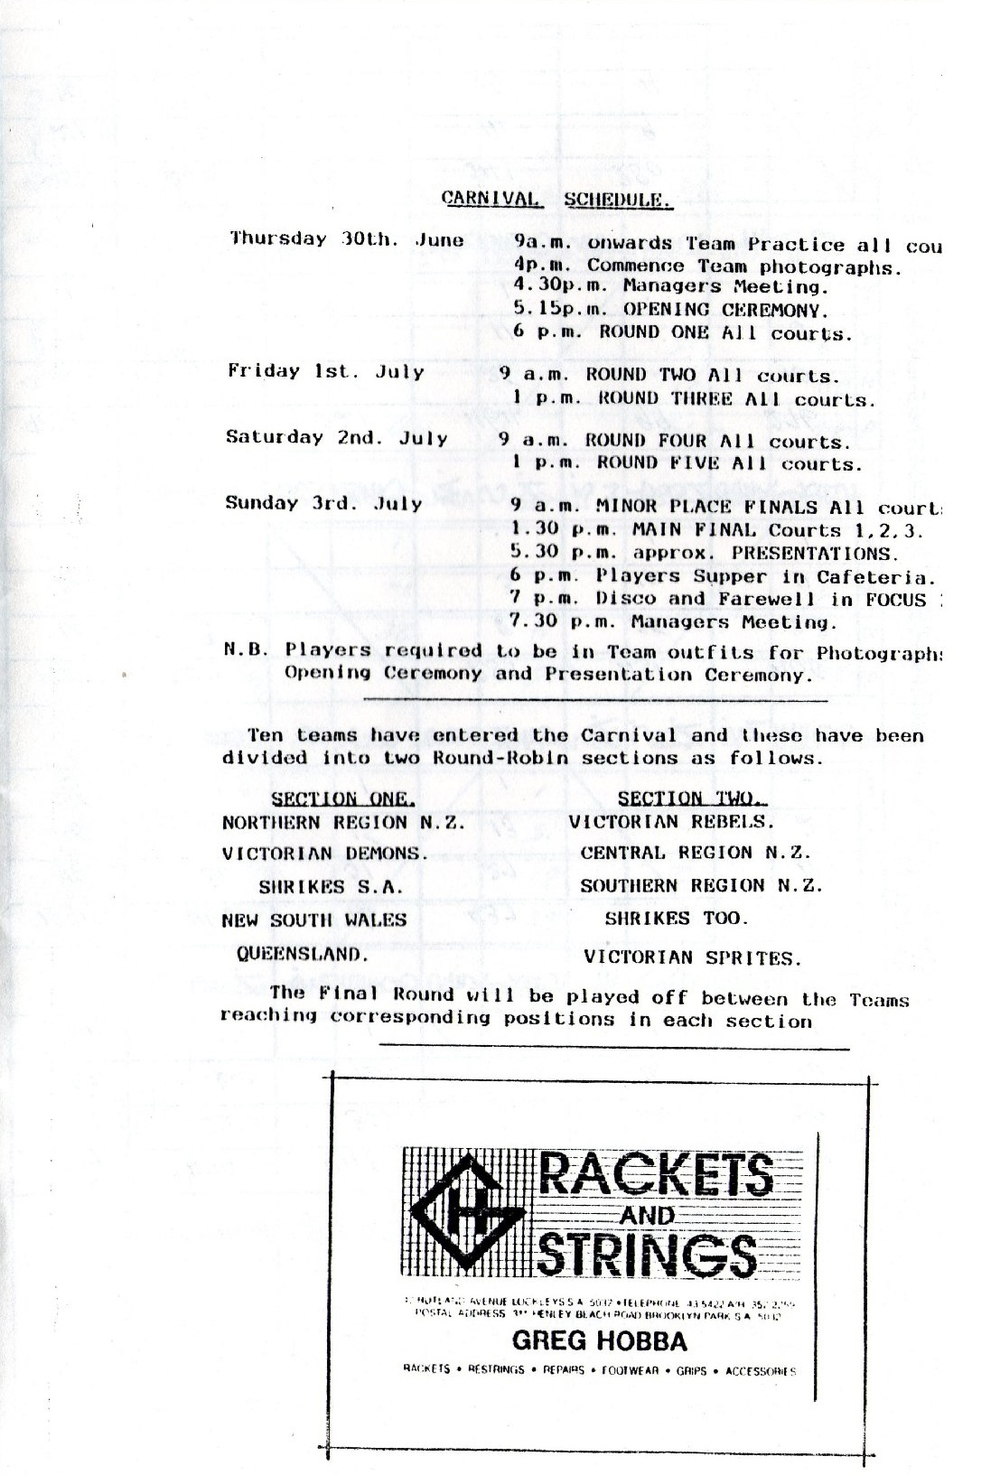 1988 June Bevan Trophy schedule